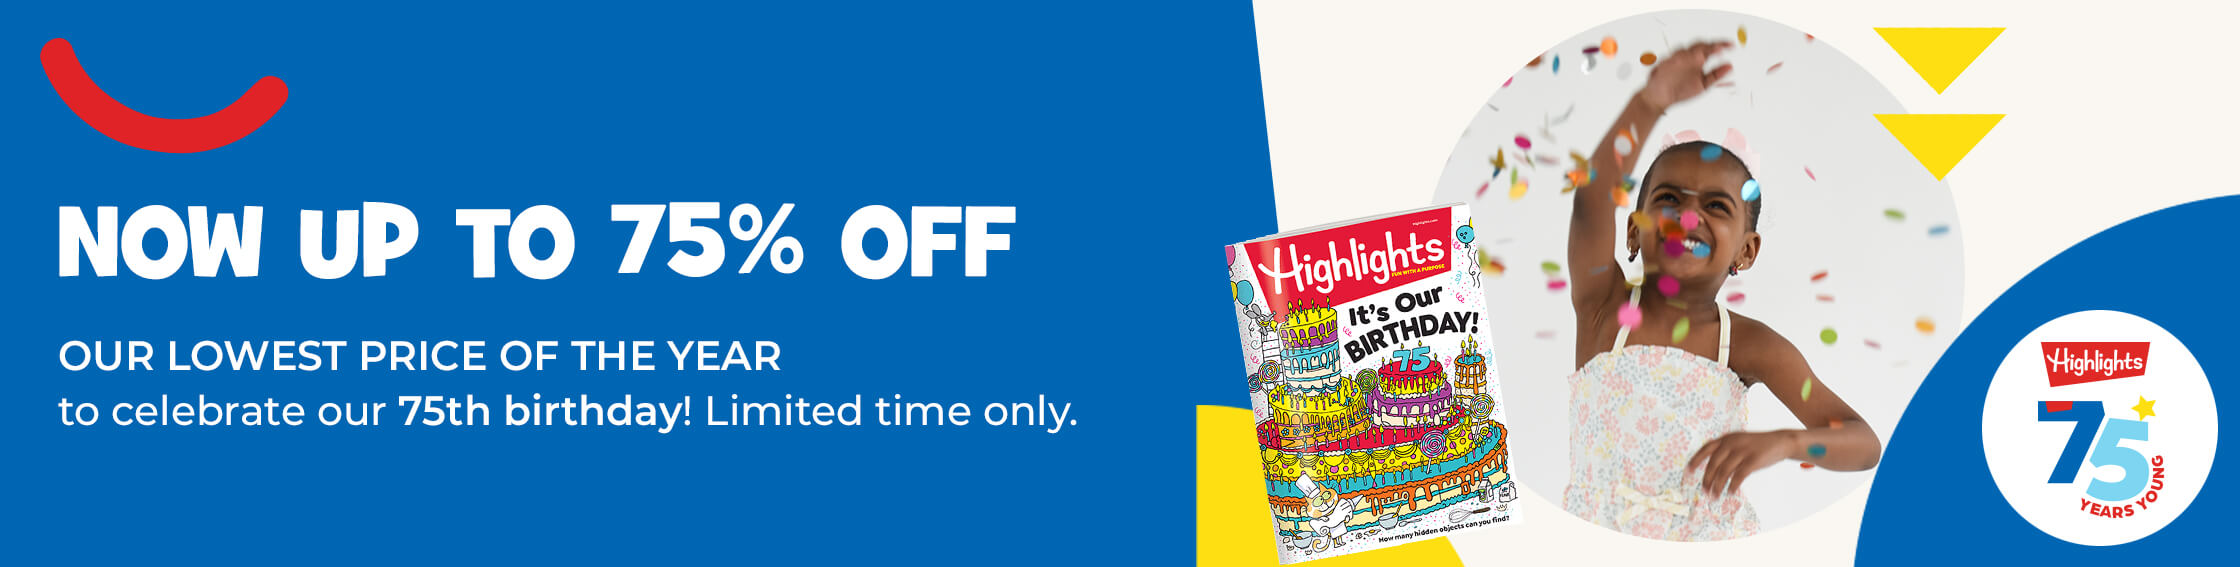 Celebrate our 75th birthday with UP TO 75% OFF magazines – our lowest price of the year!